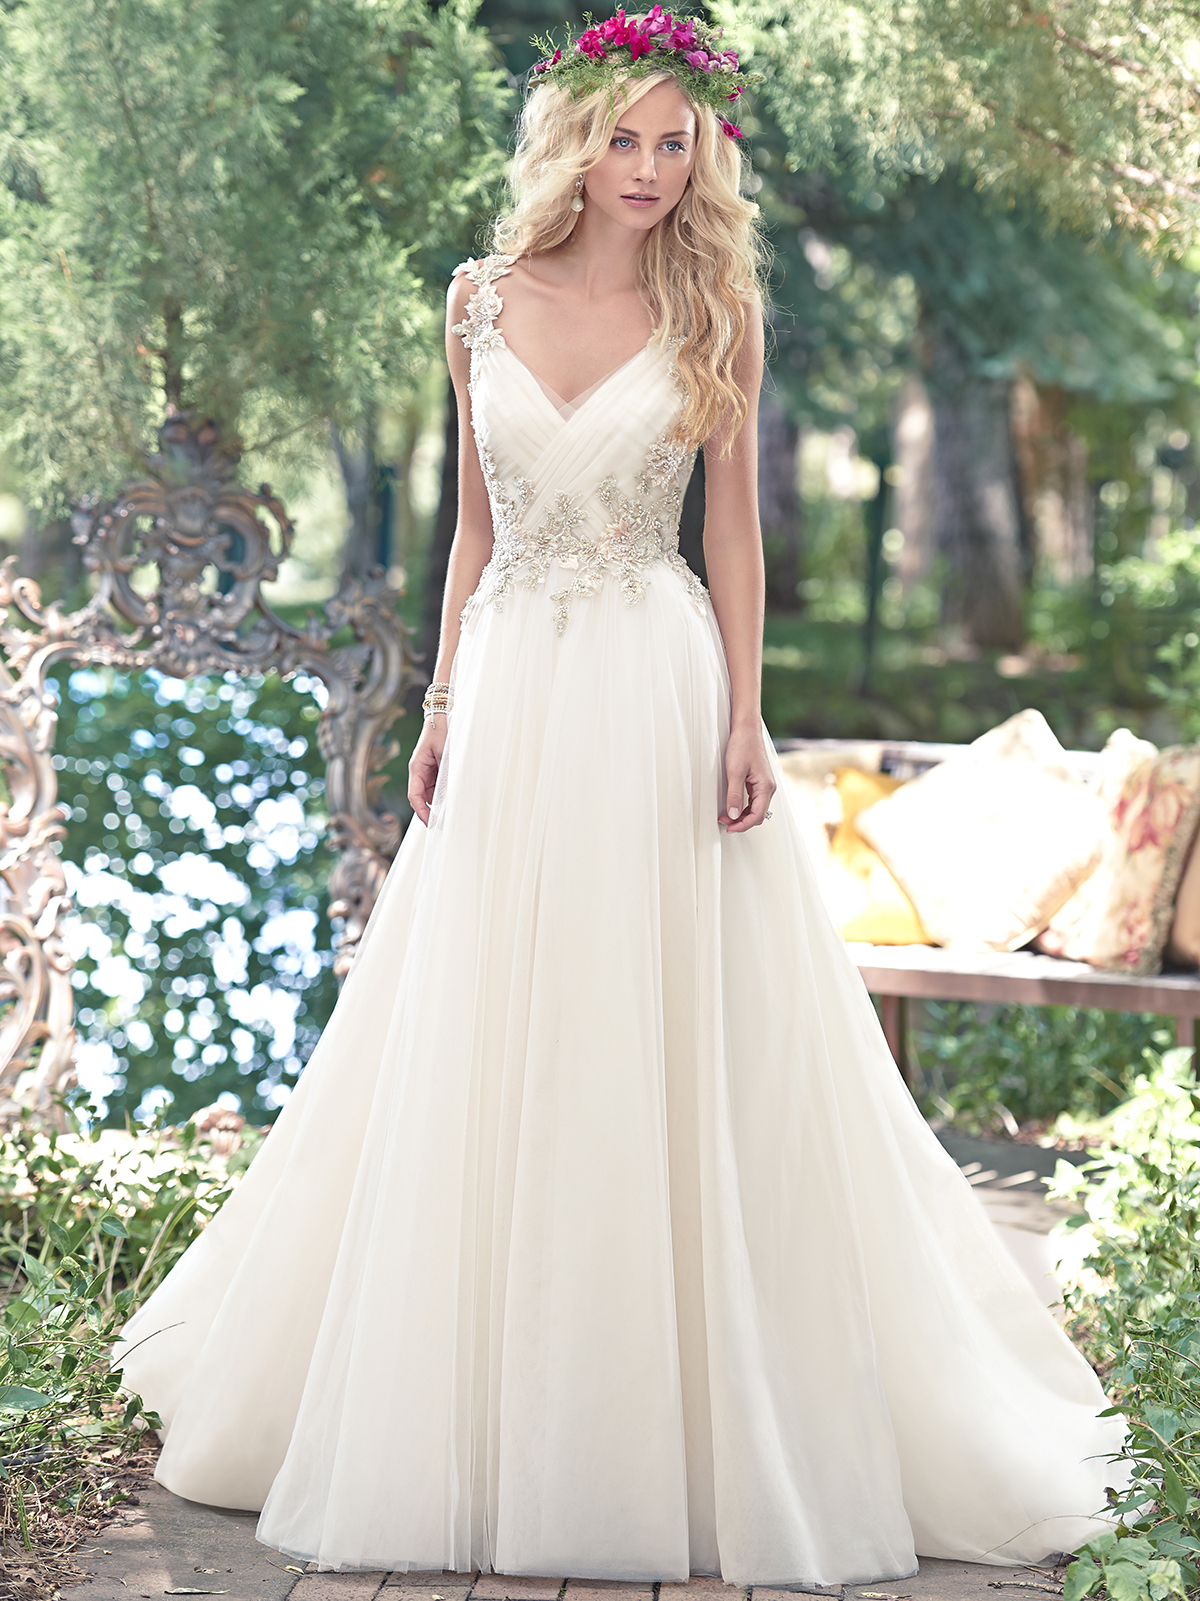 Rent Wedding Dress Orange County Prom Dress Rental Orange County ...